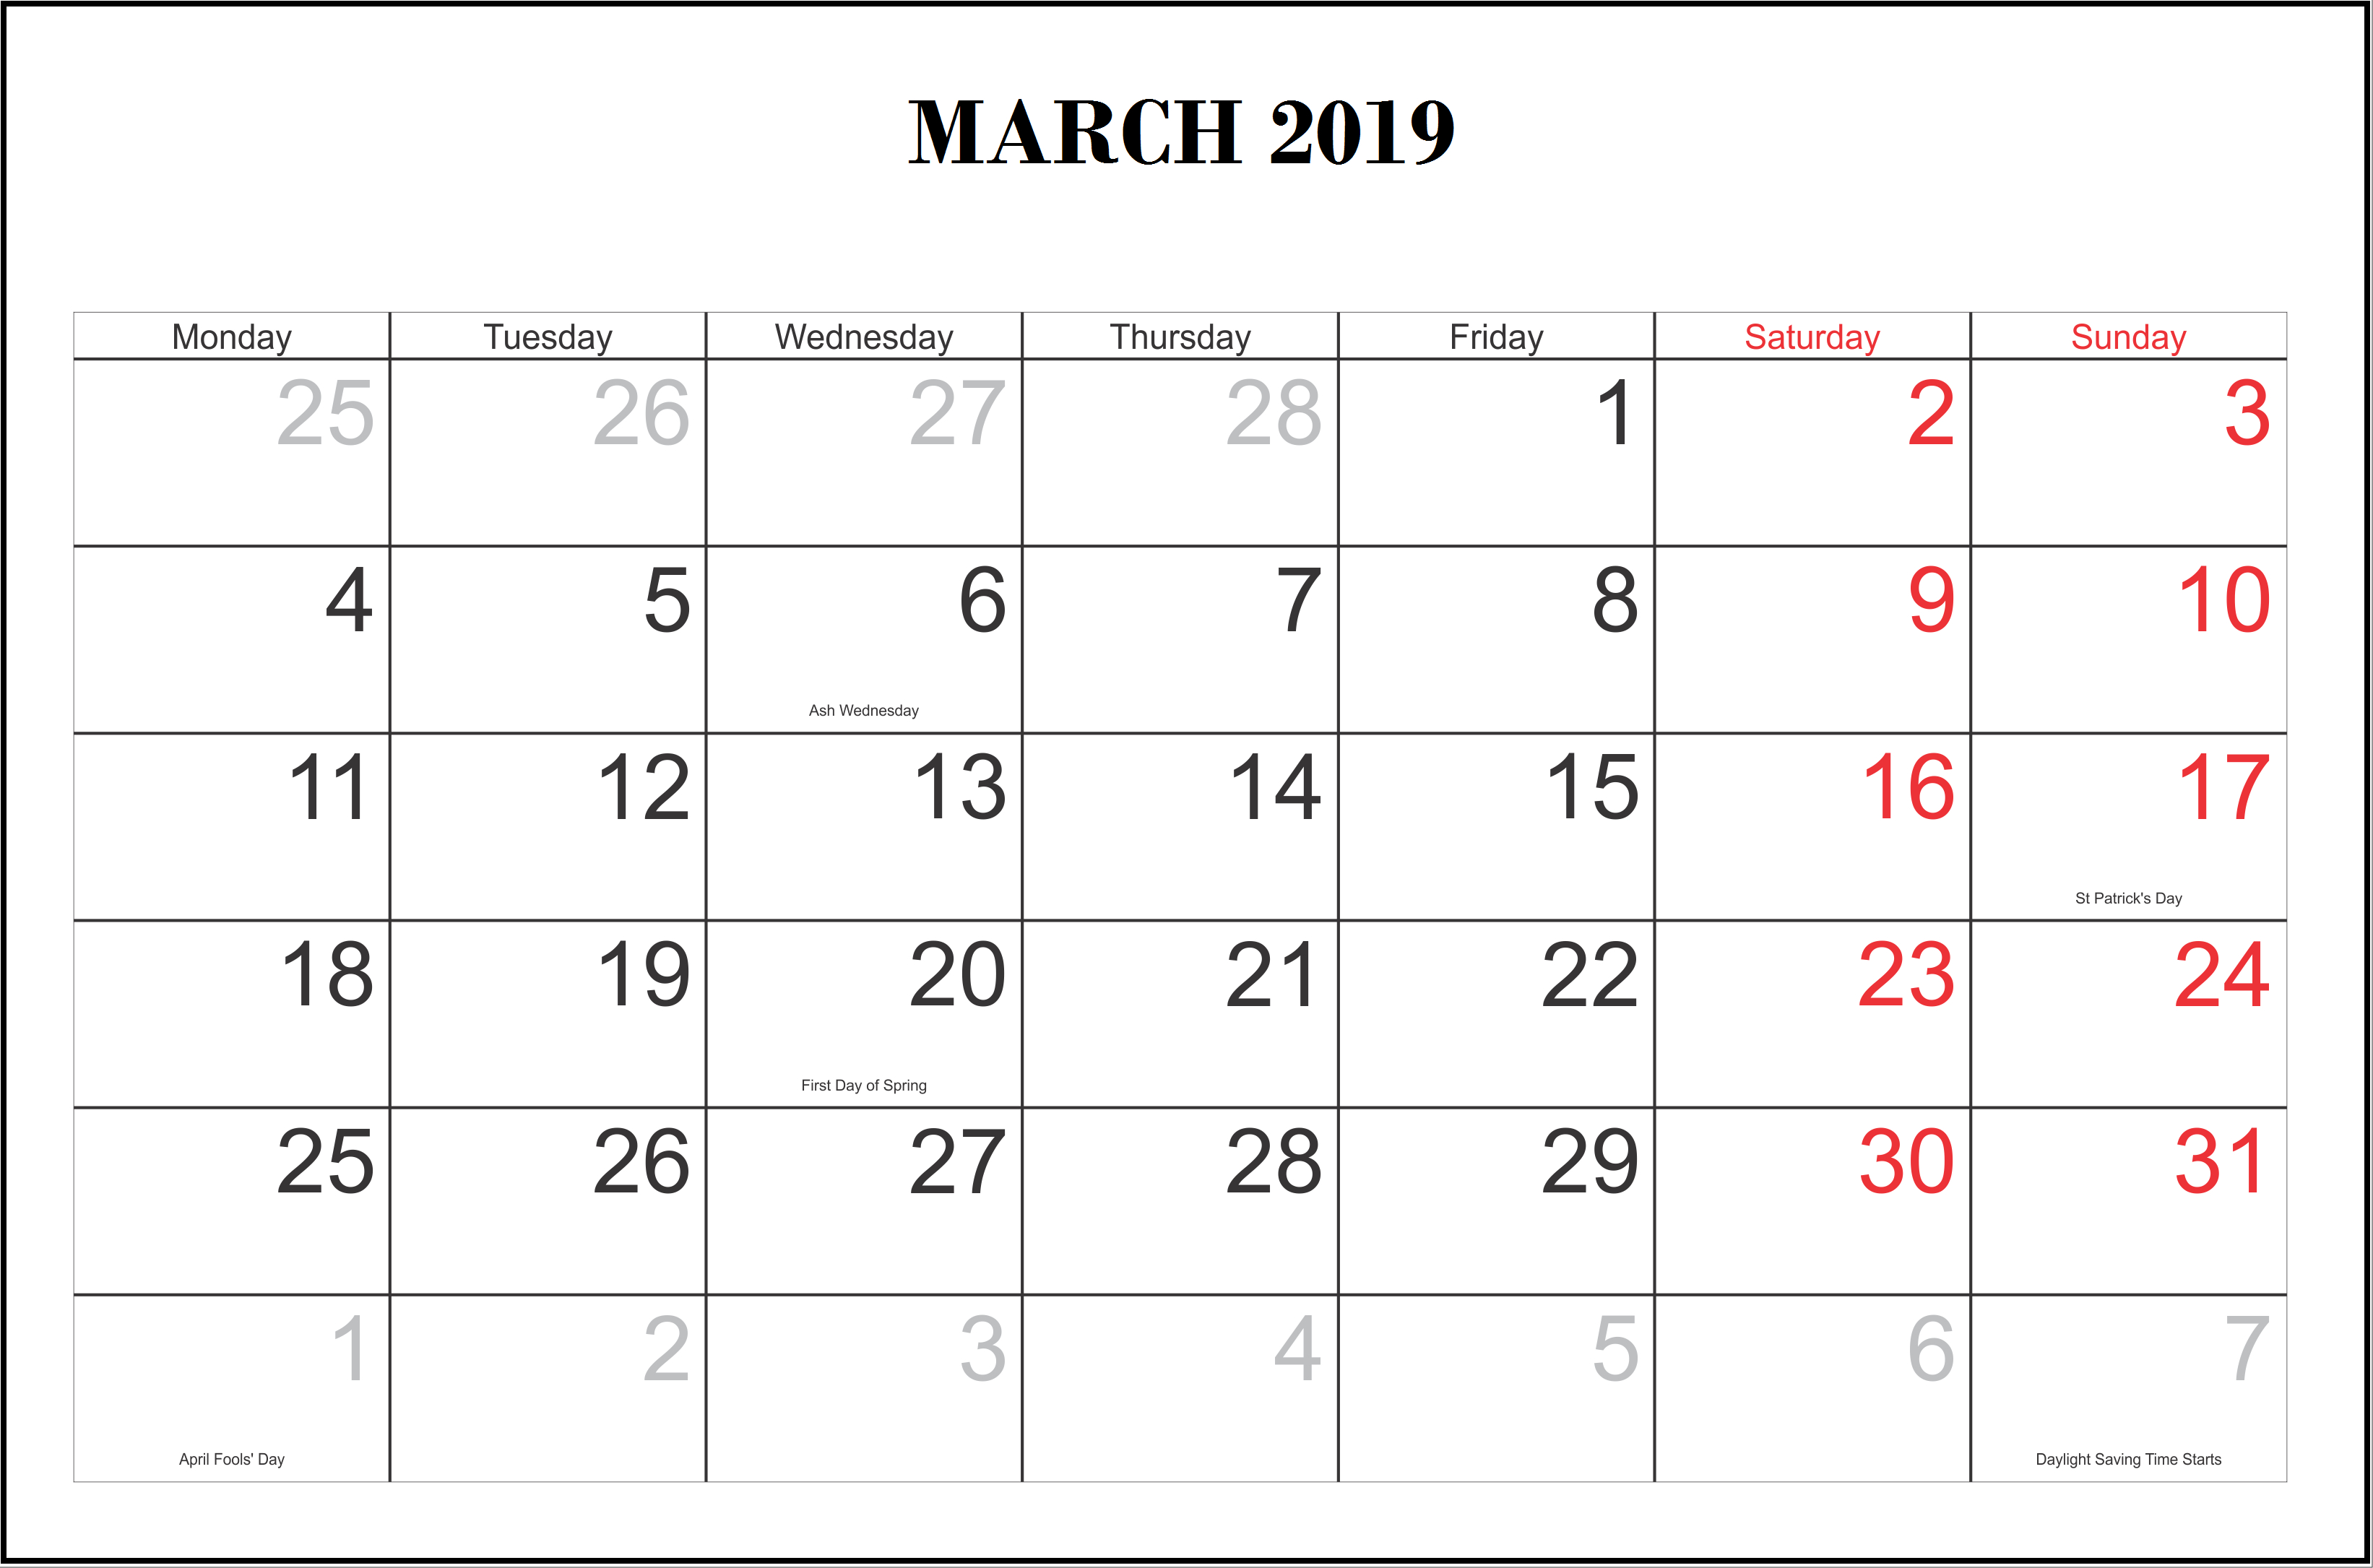 March 2019 Calendar Canada Printable | Printable Calendar 2019 intended for Pretty Calendar Template Printable March